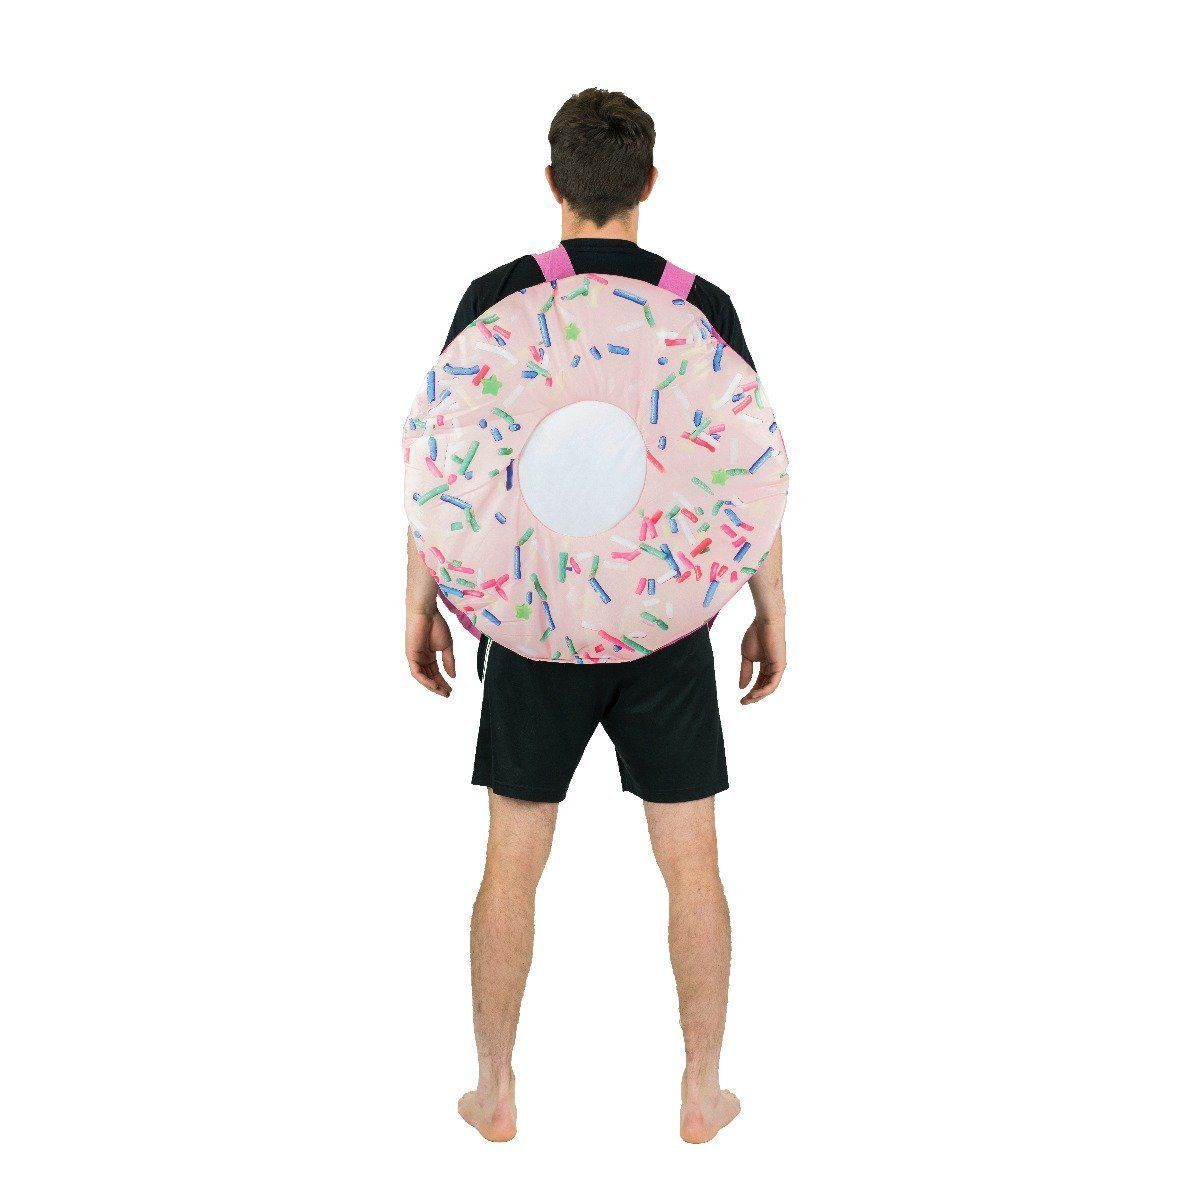 Fancy Dress - Donut Costume